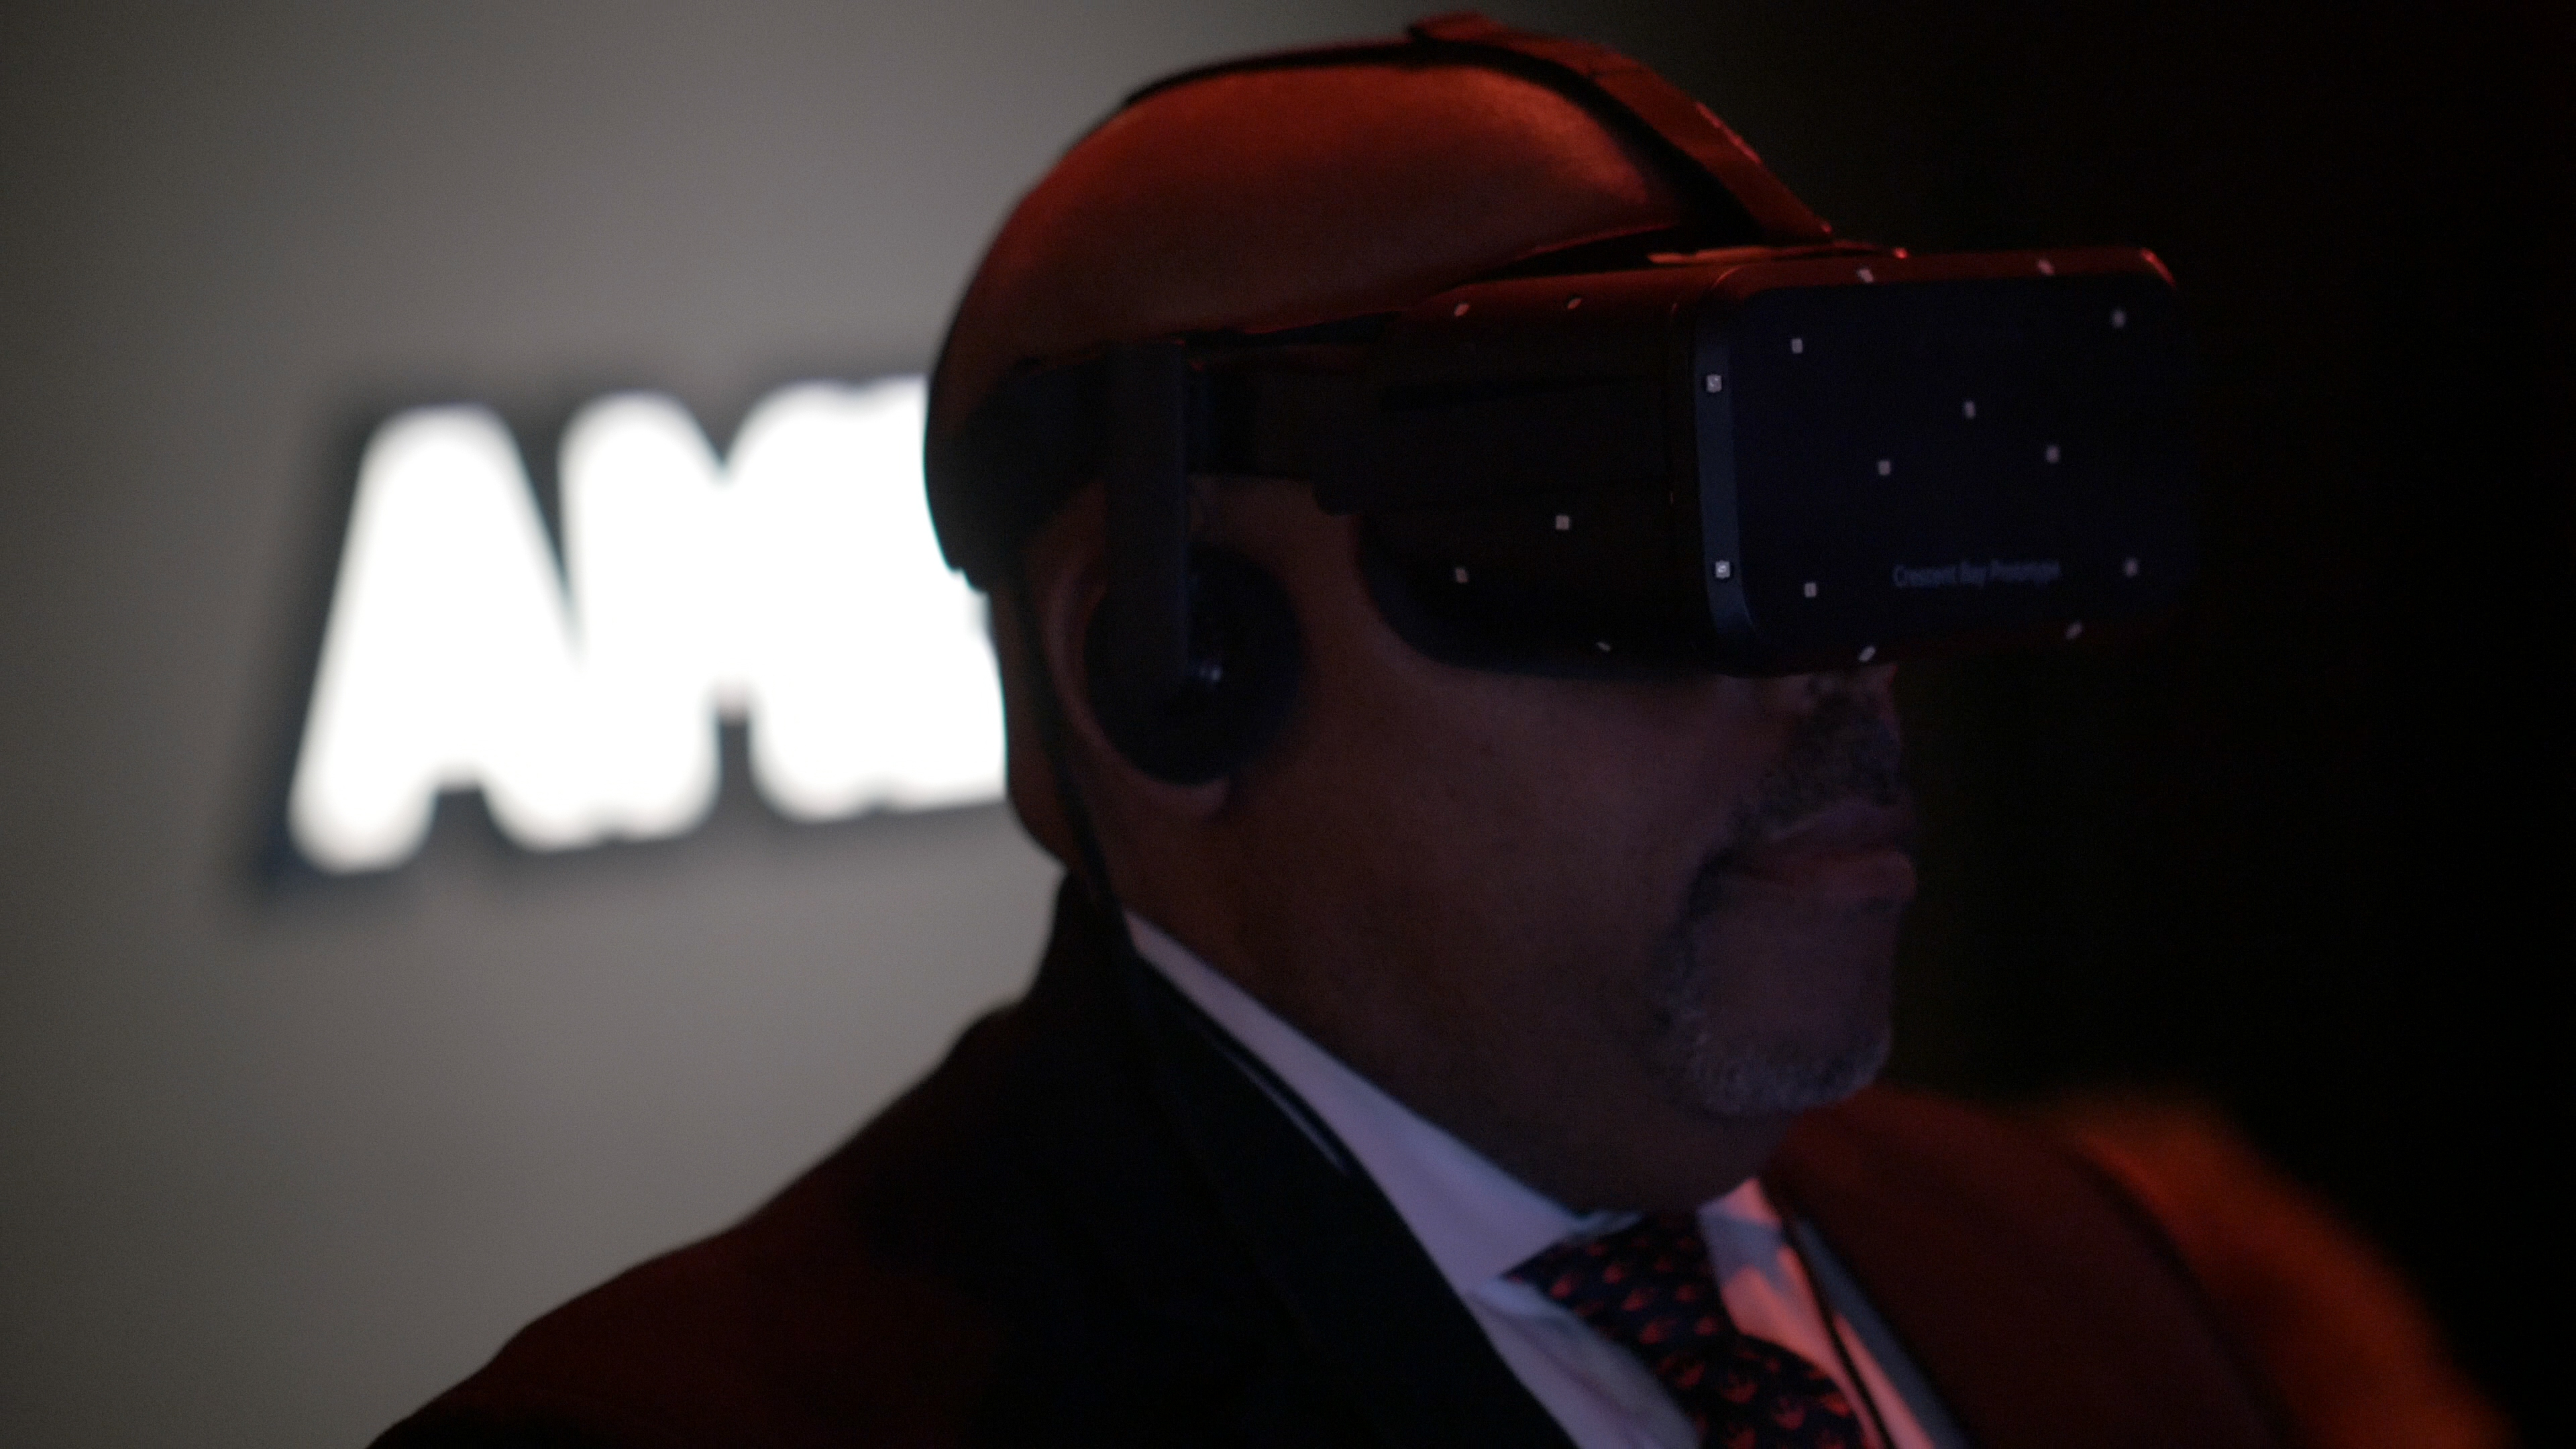 AMD is investing in virtual reality across games, entertainment and education.